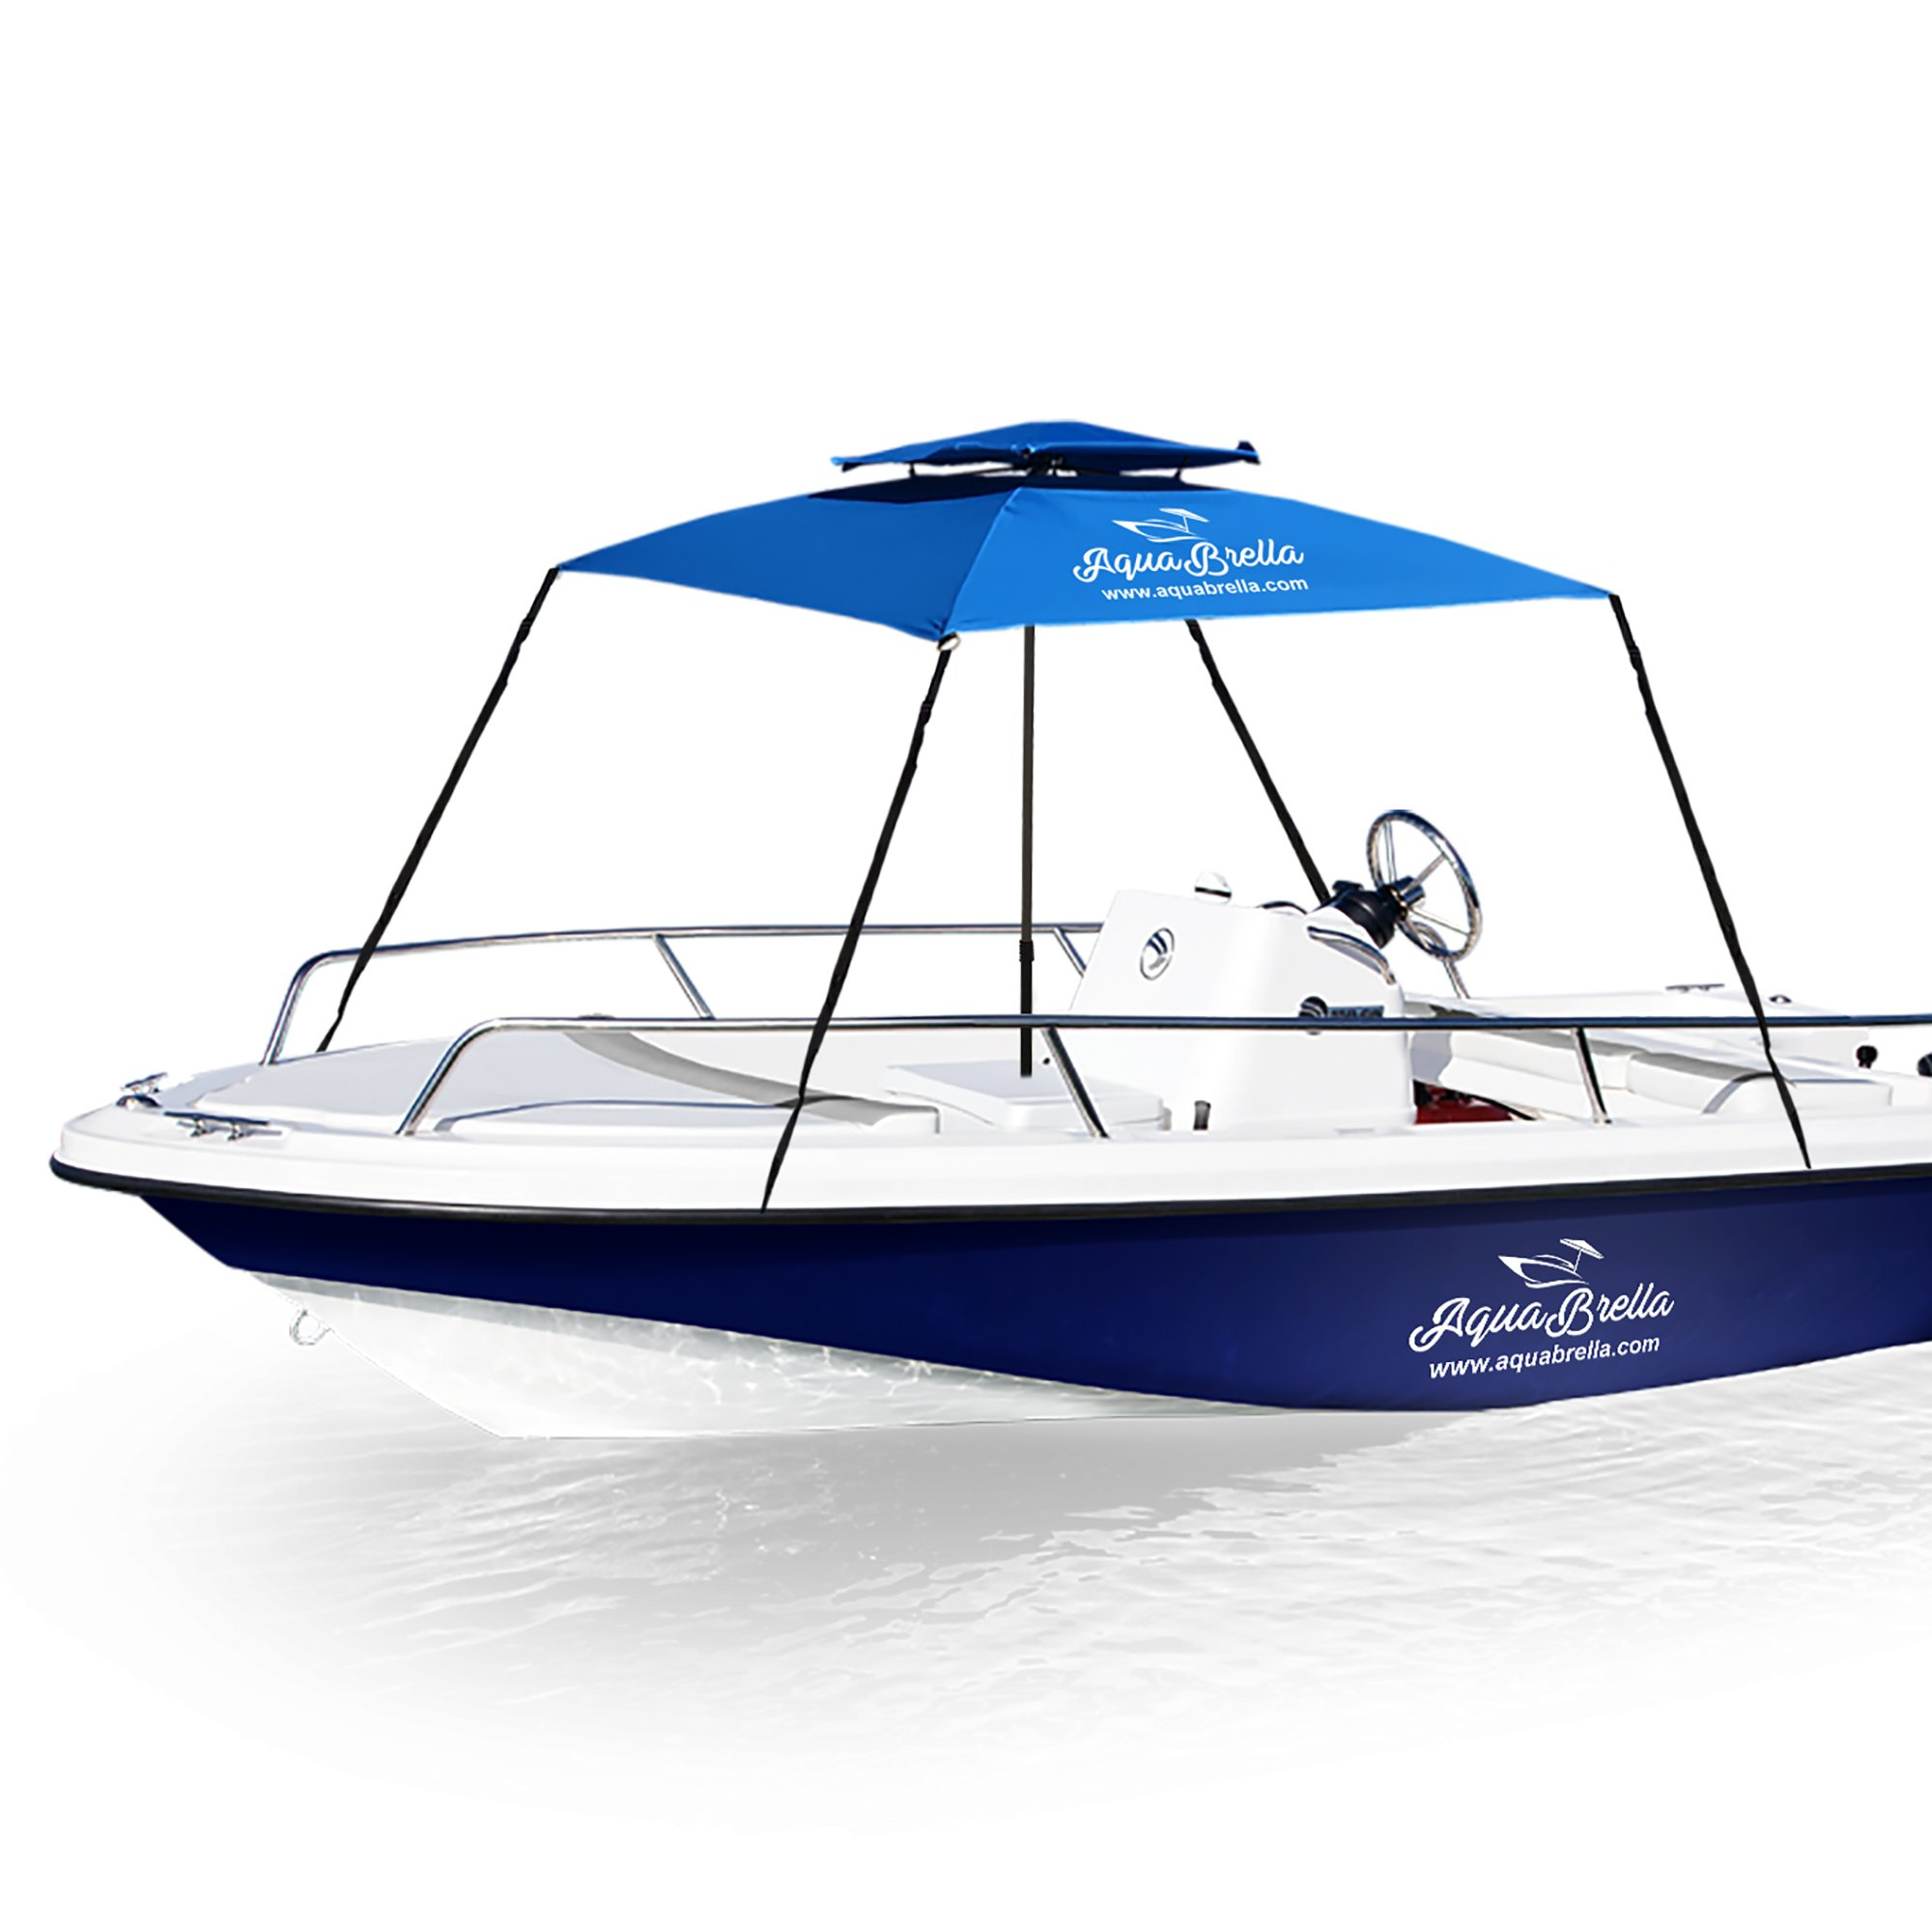 EasyGoProducts AquaBrella – The Portable Bimini Boat Top Cover Canopy. Large size 6 foot X 6 Foot